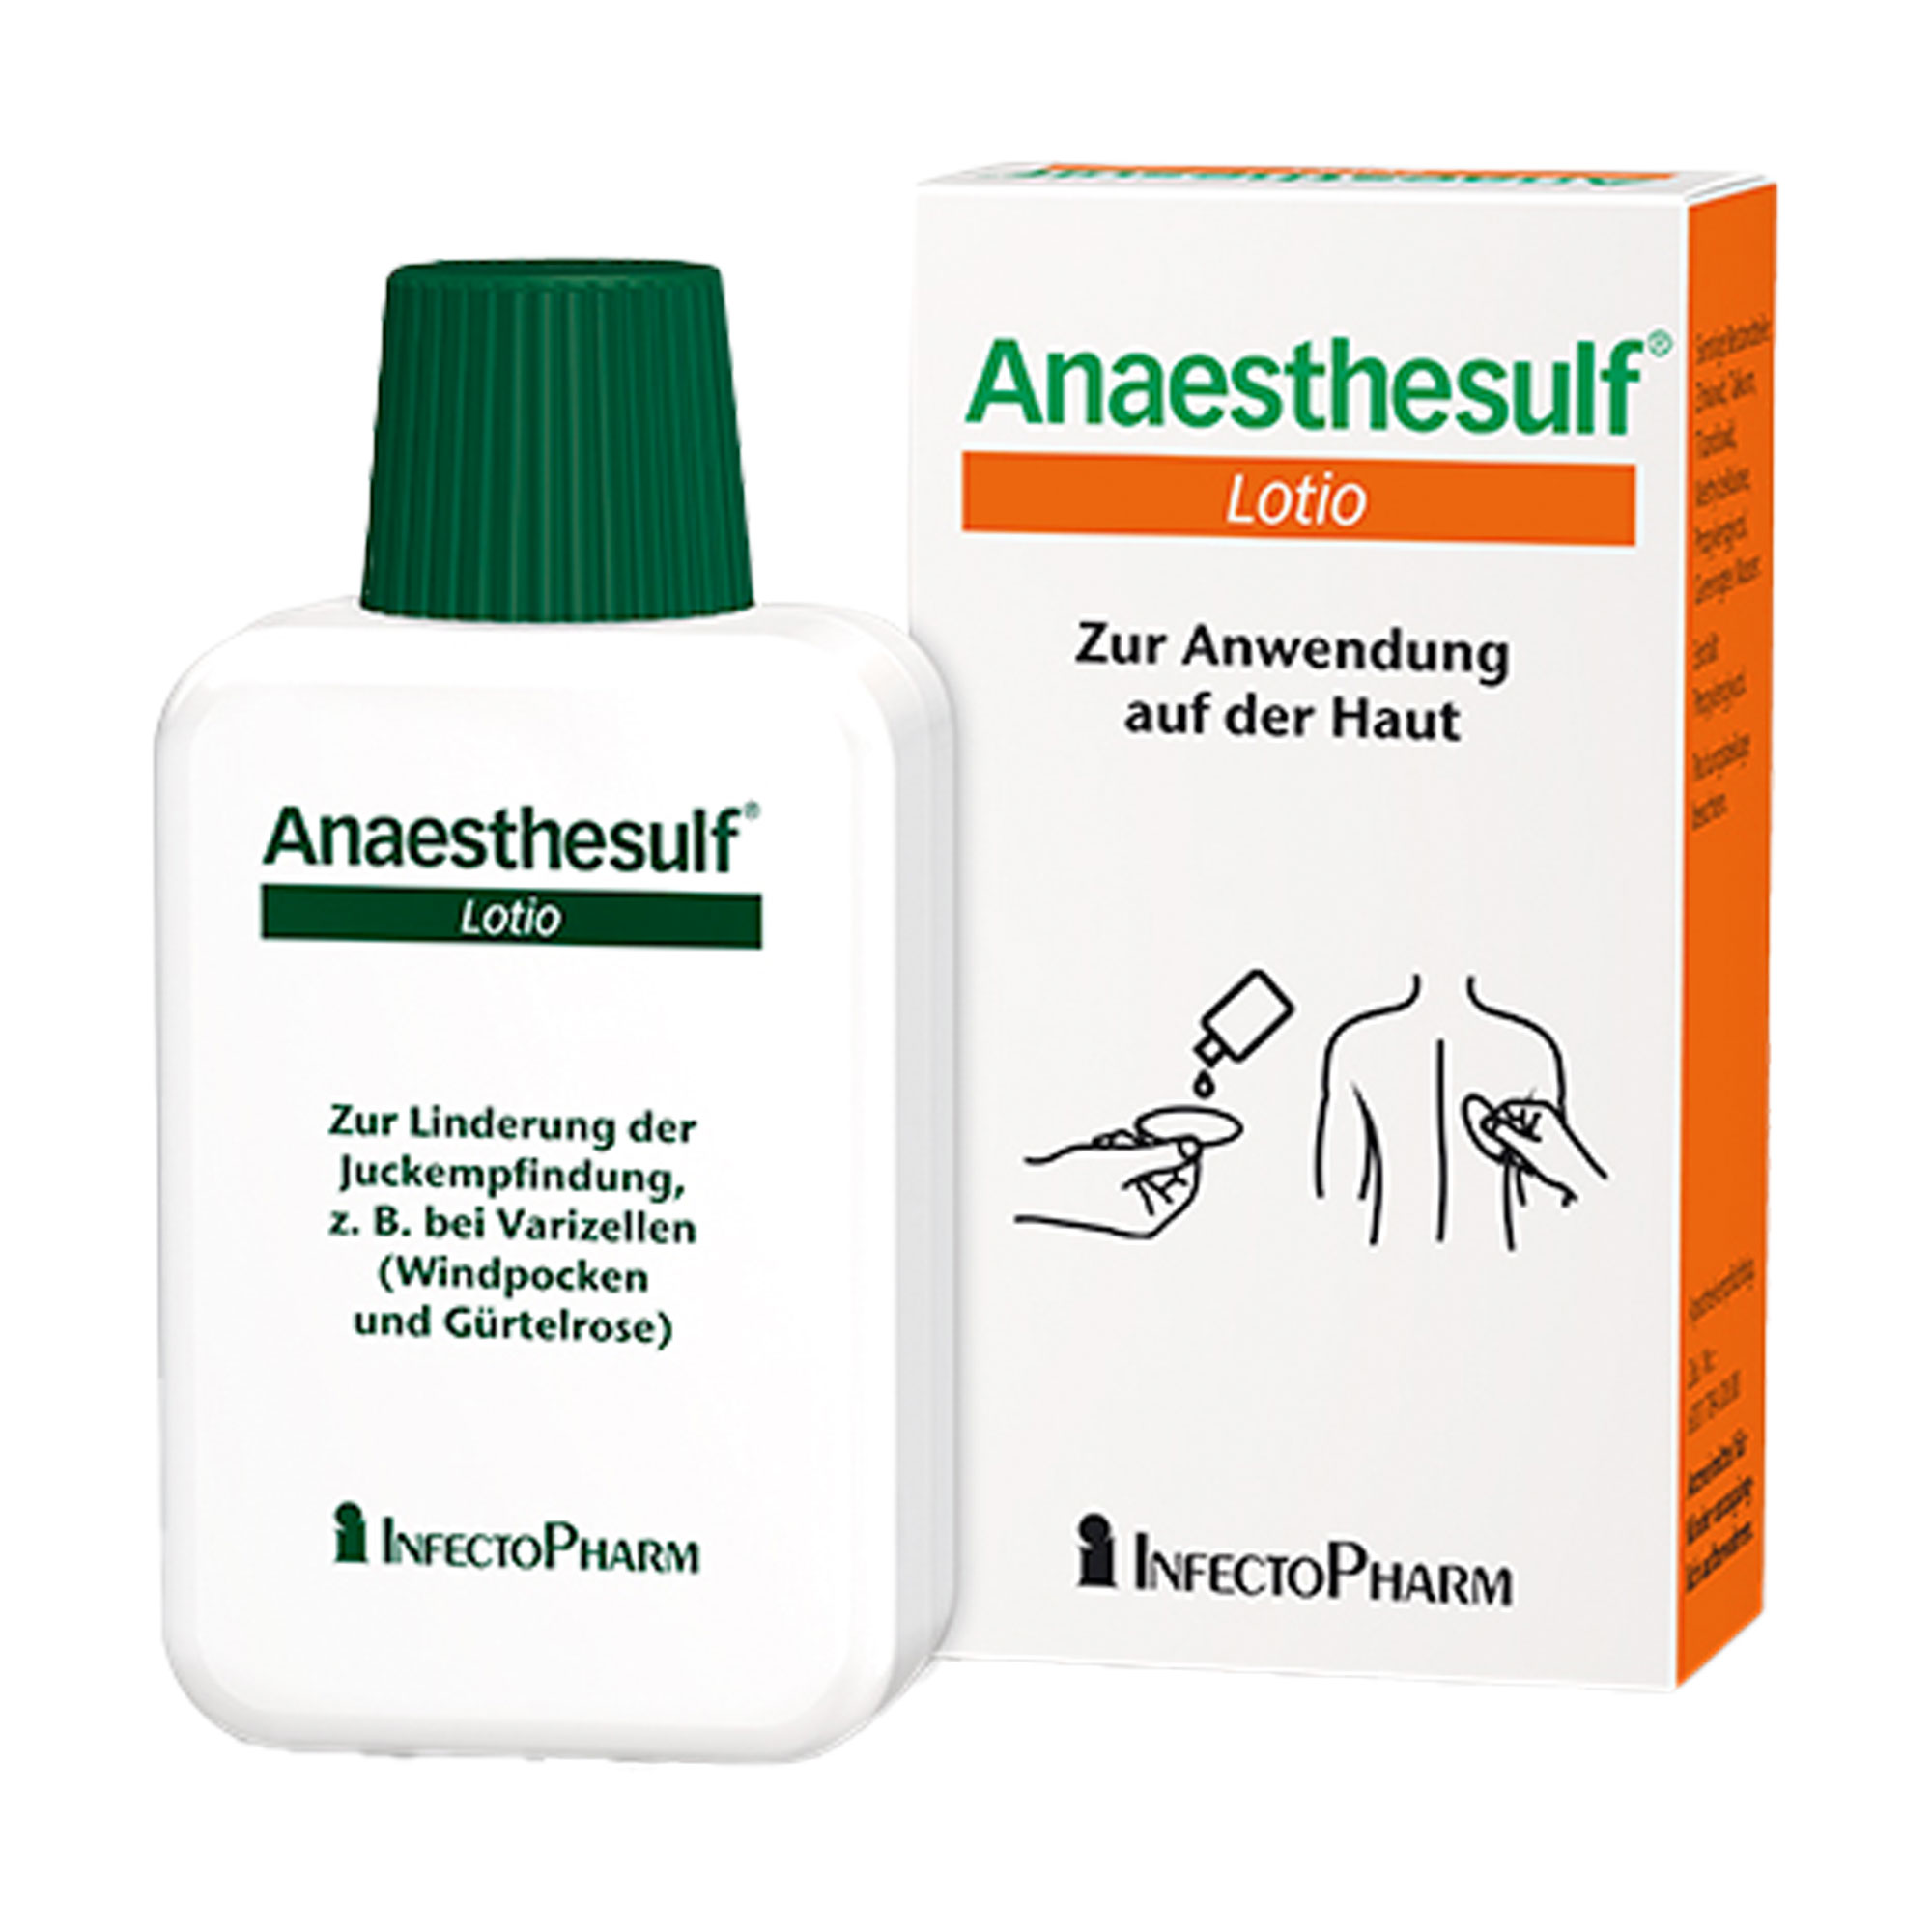 Anaesthesulf Lotio